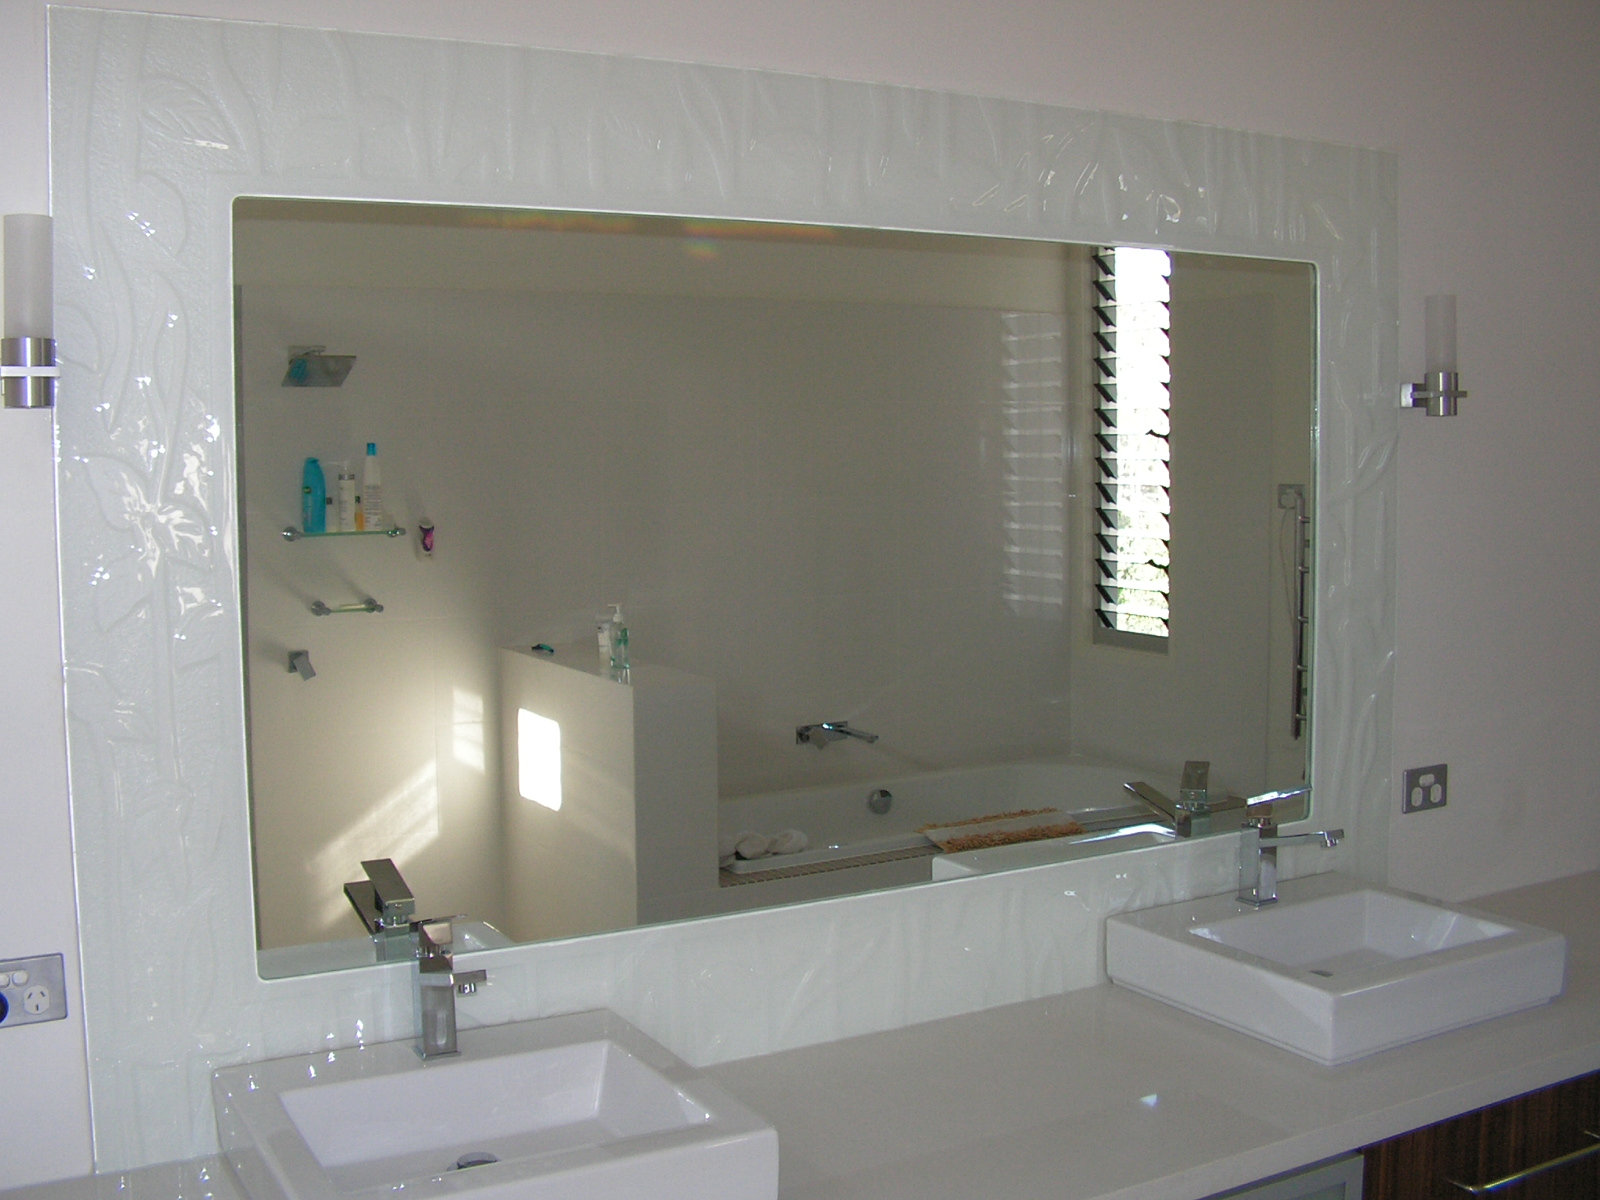 Glass Mirrors, Decorative glass mirror Frames - Texured, Slumped and ...